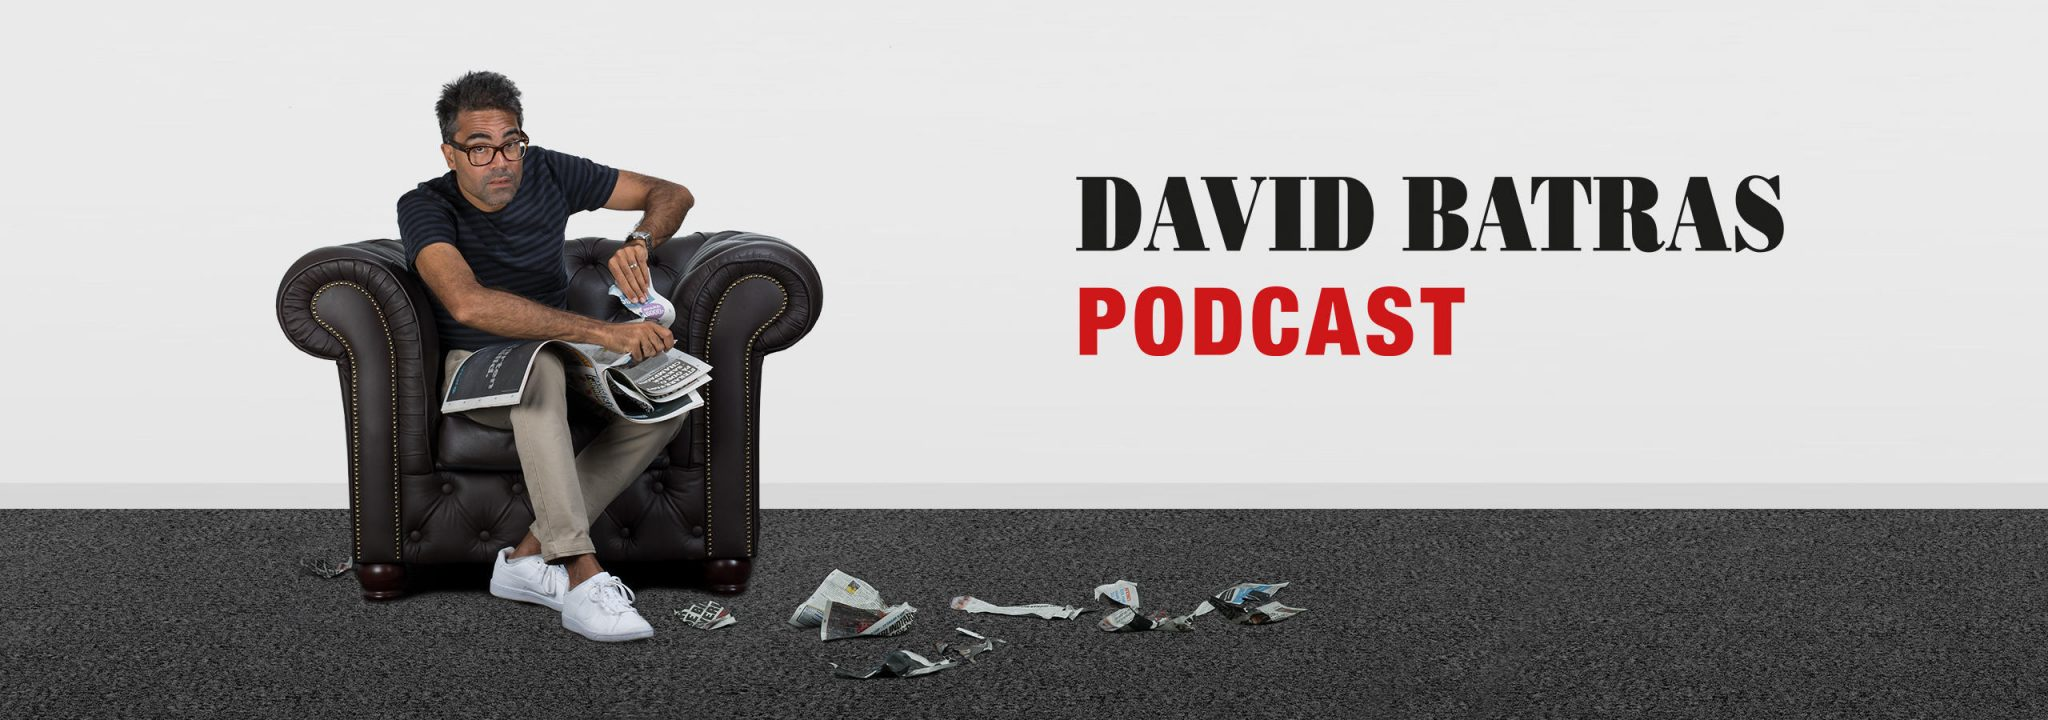 podcast med david batra